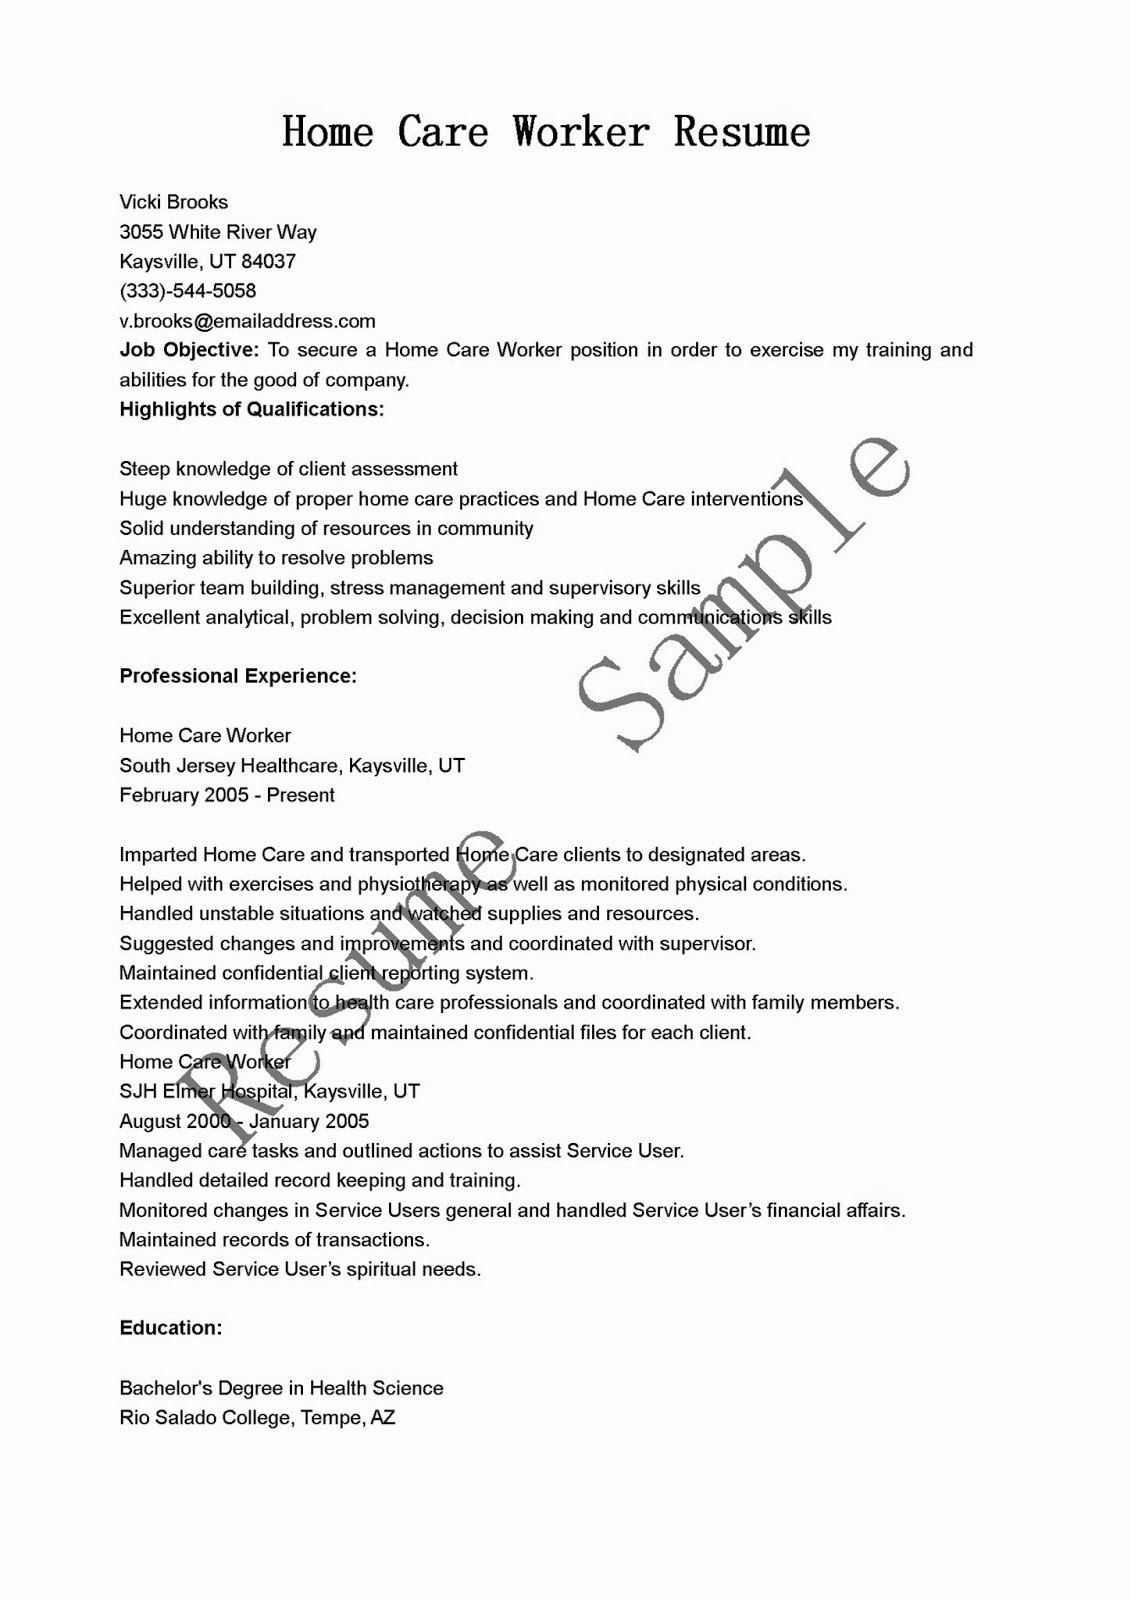 Resume Samples Home Care Worker Resume Sample